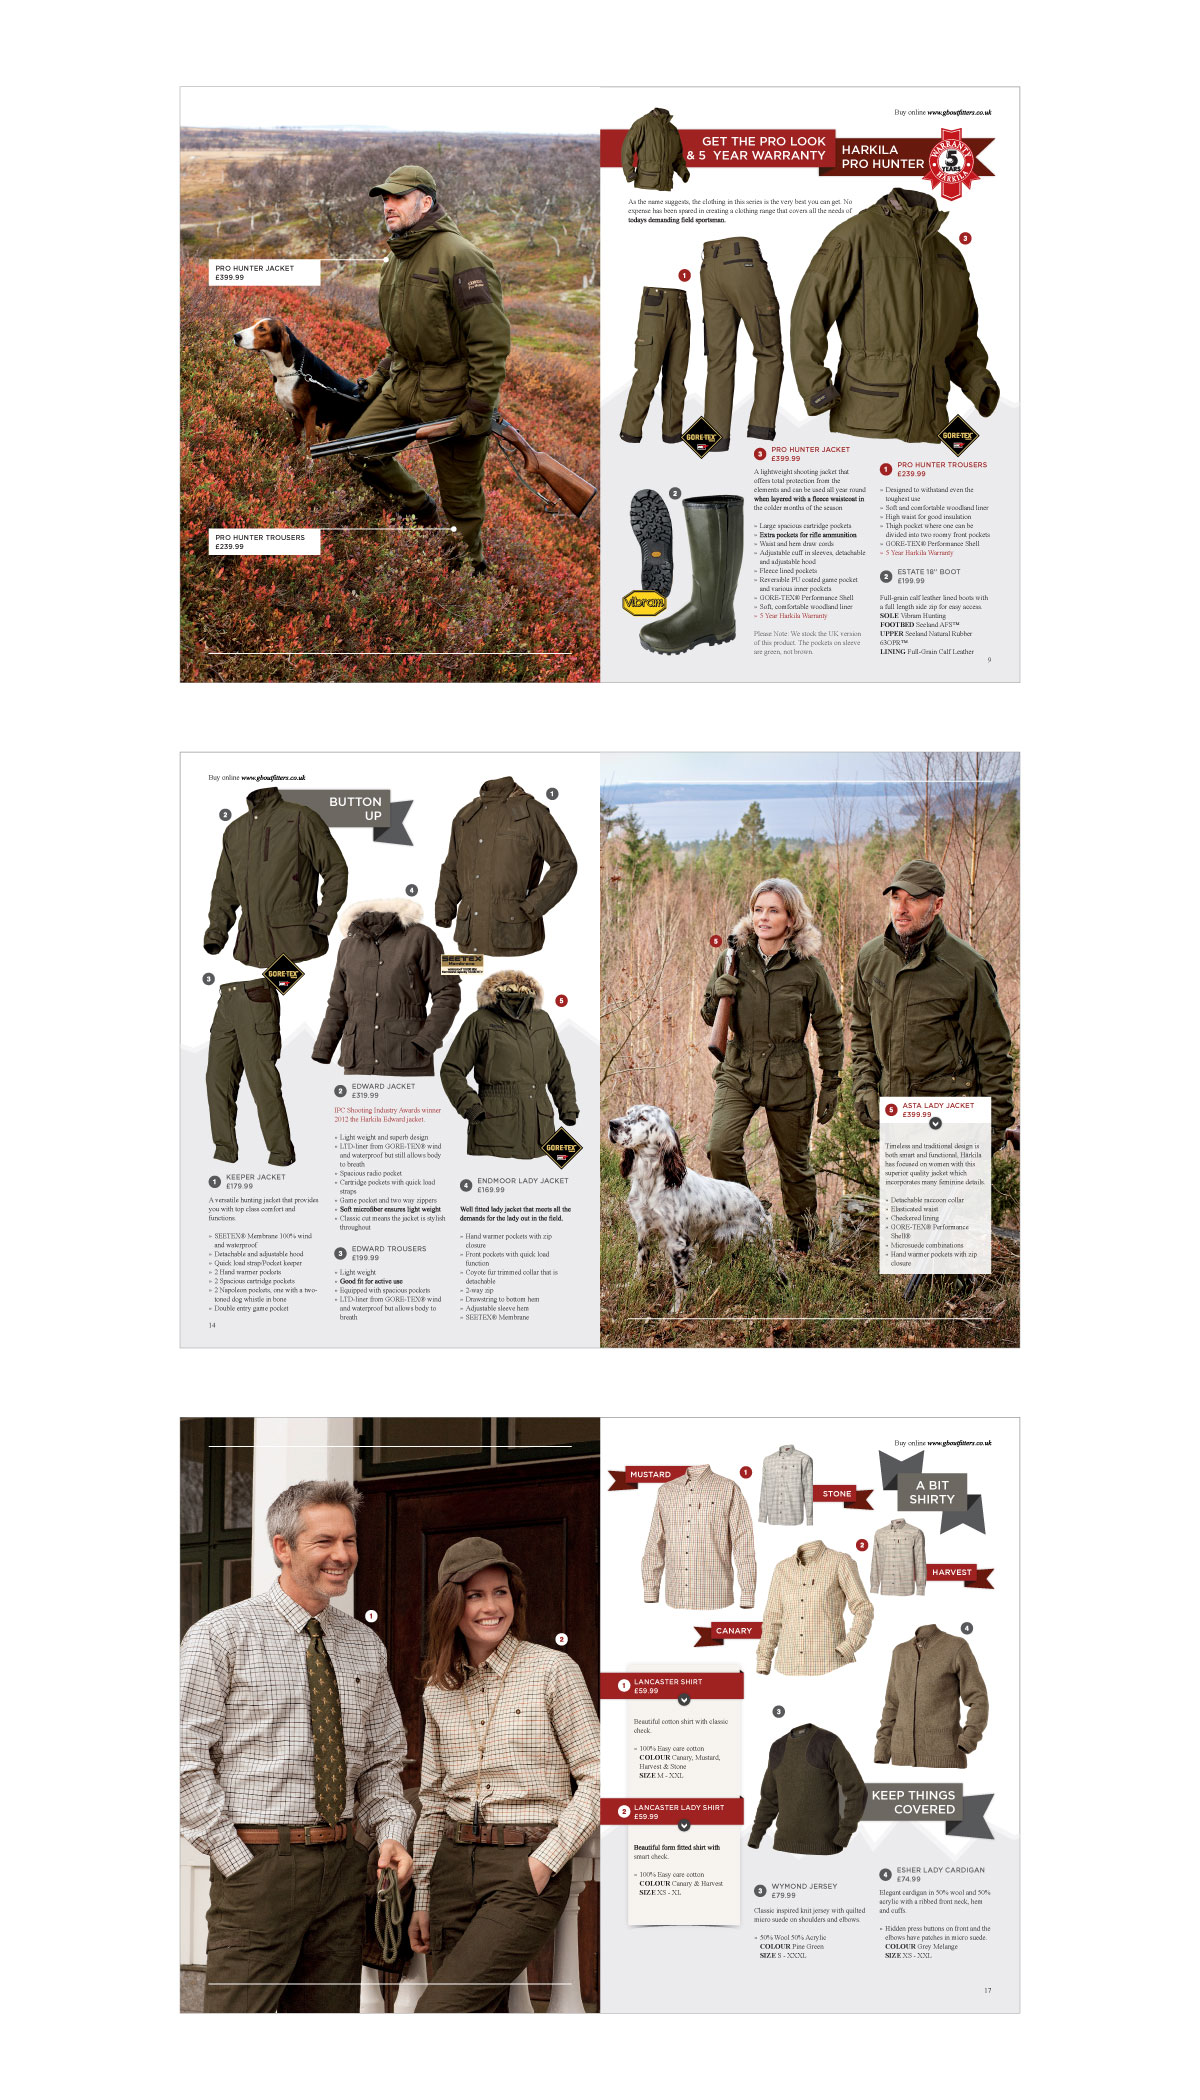 GB Outfitters Autumn/Winter 2012 Brochure